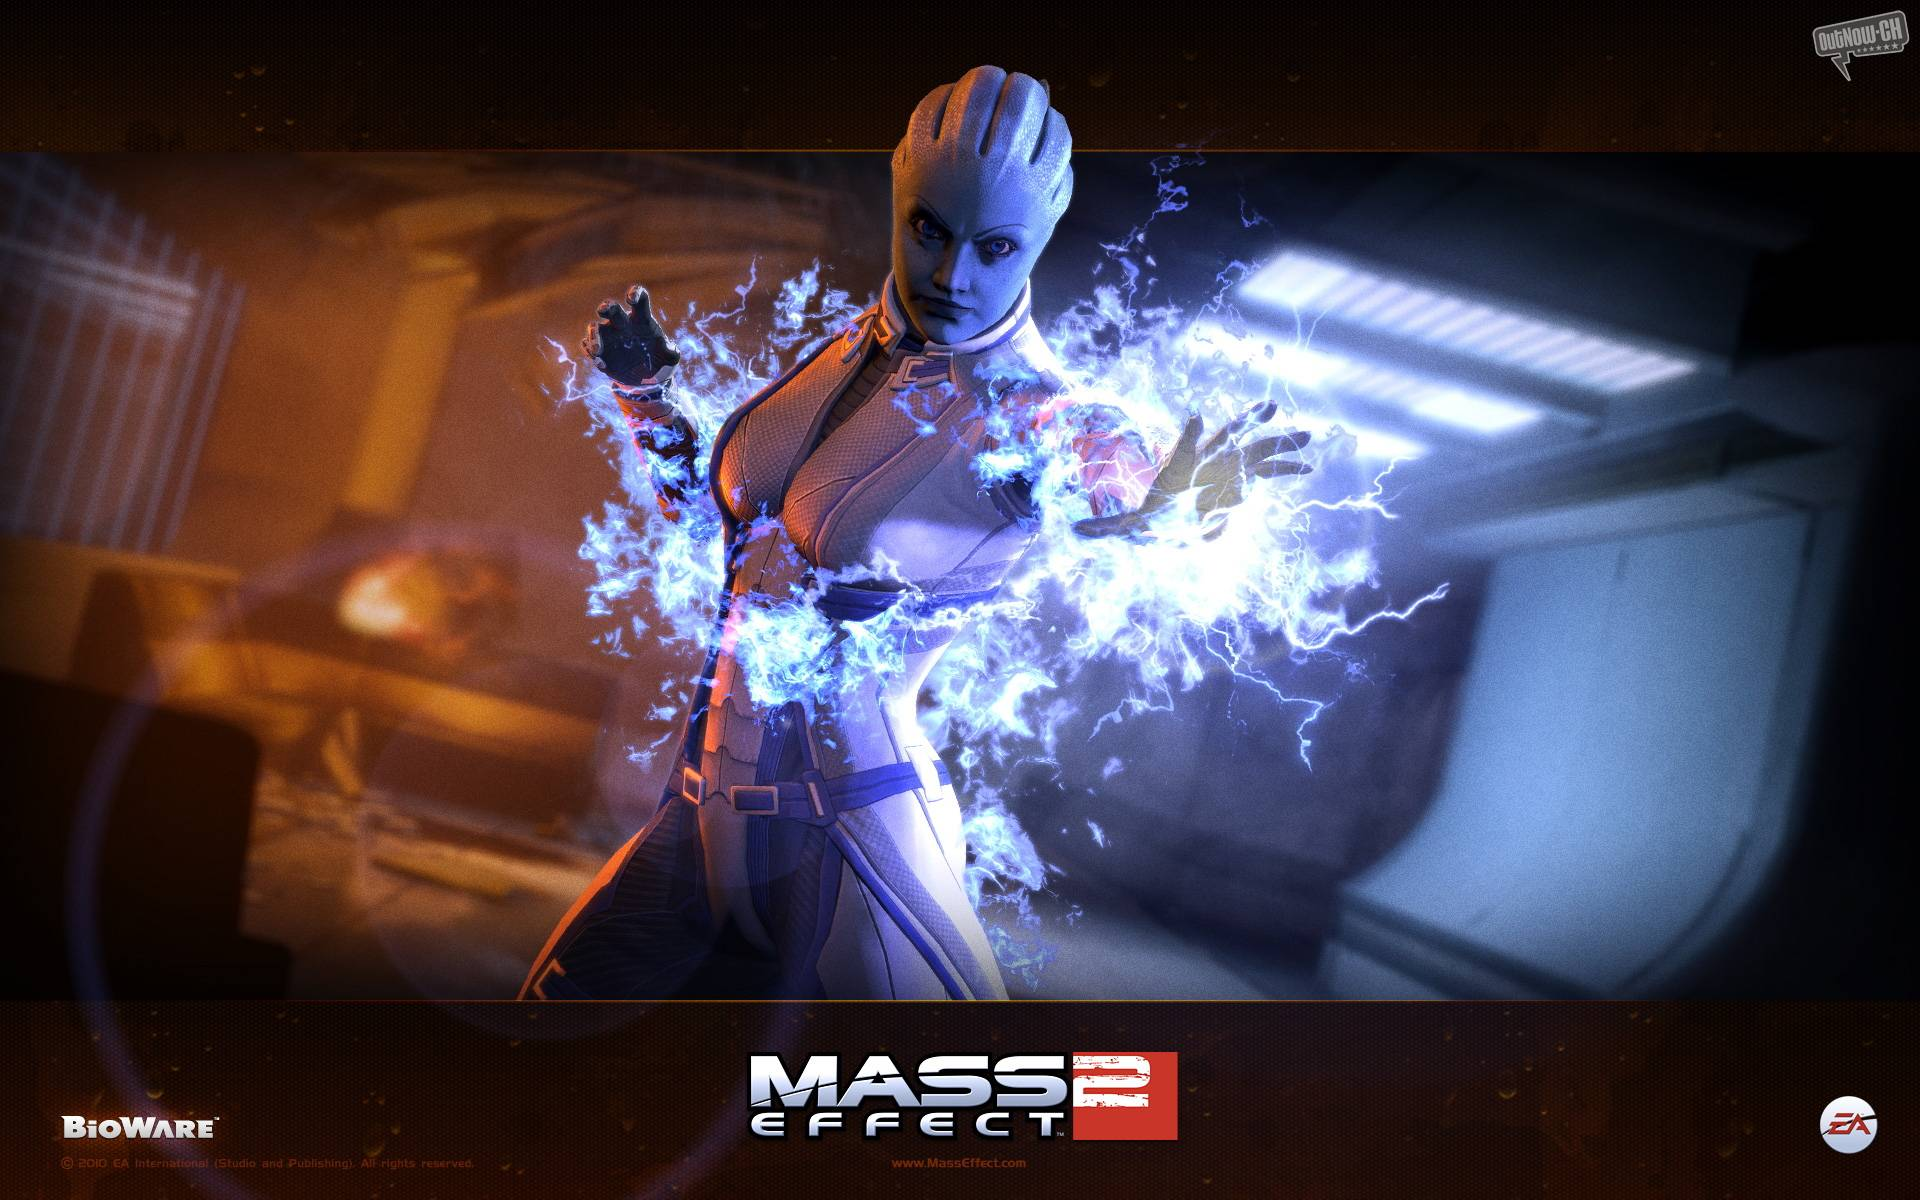 Mass Effect Wallpapers 12 252637 Image HD Wallpapers